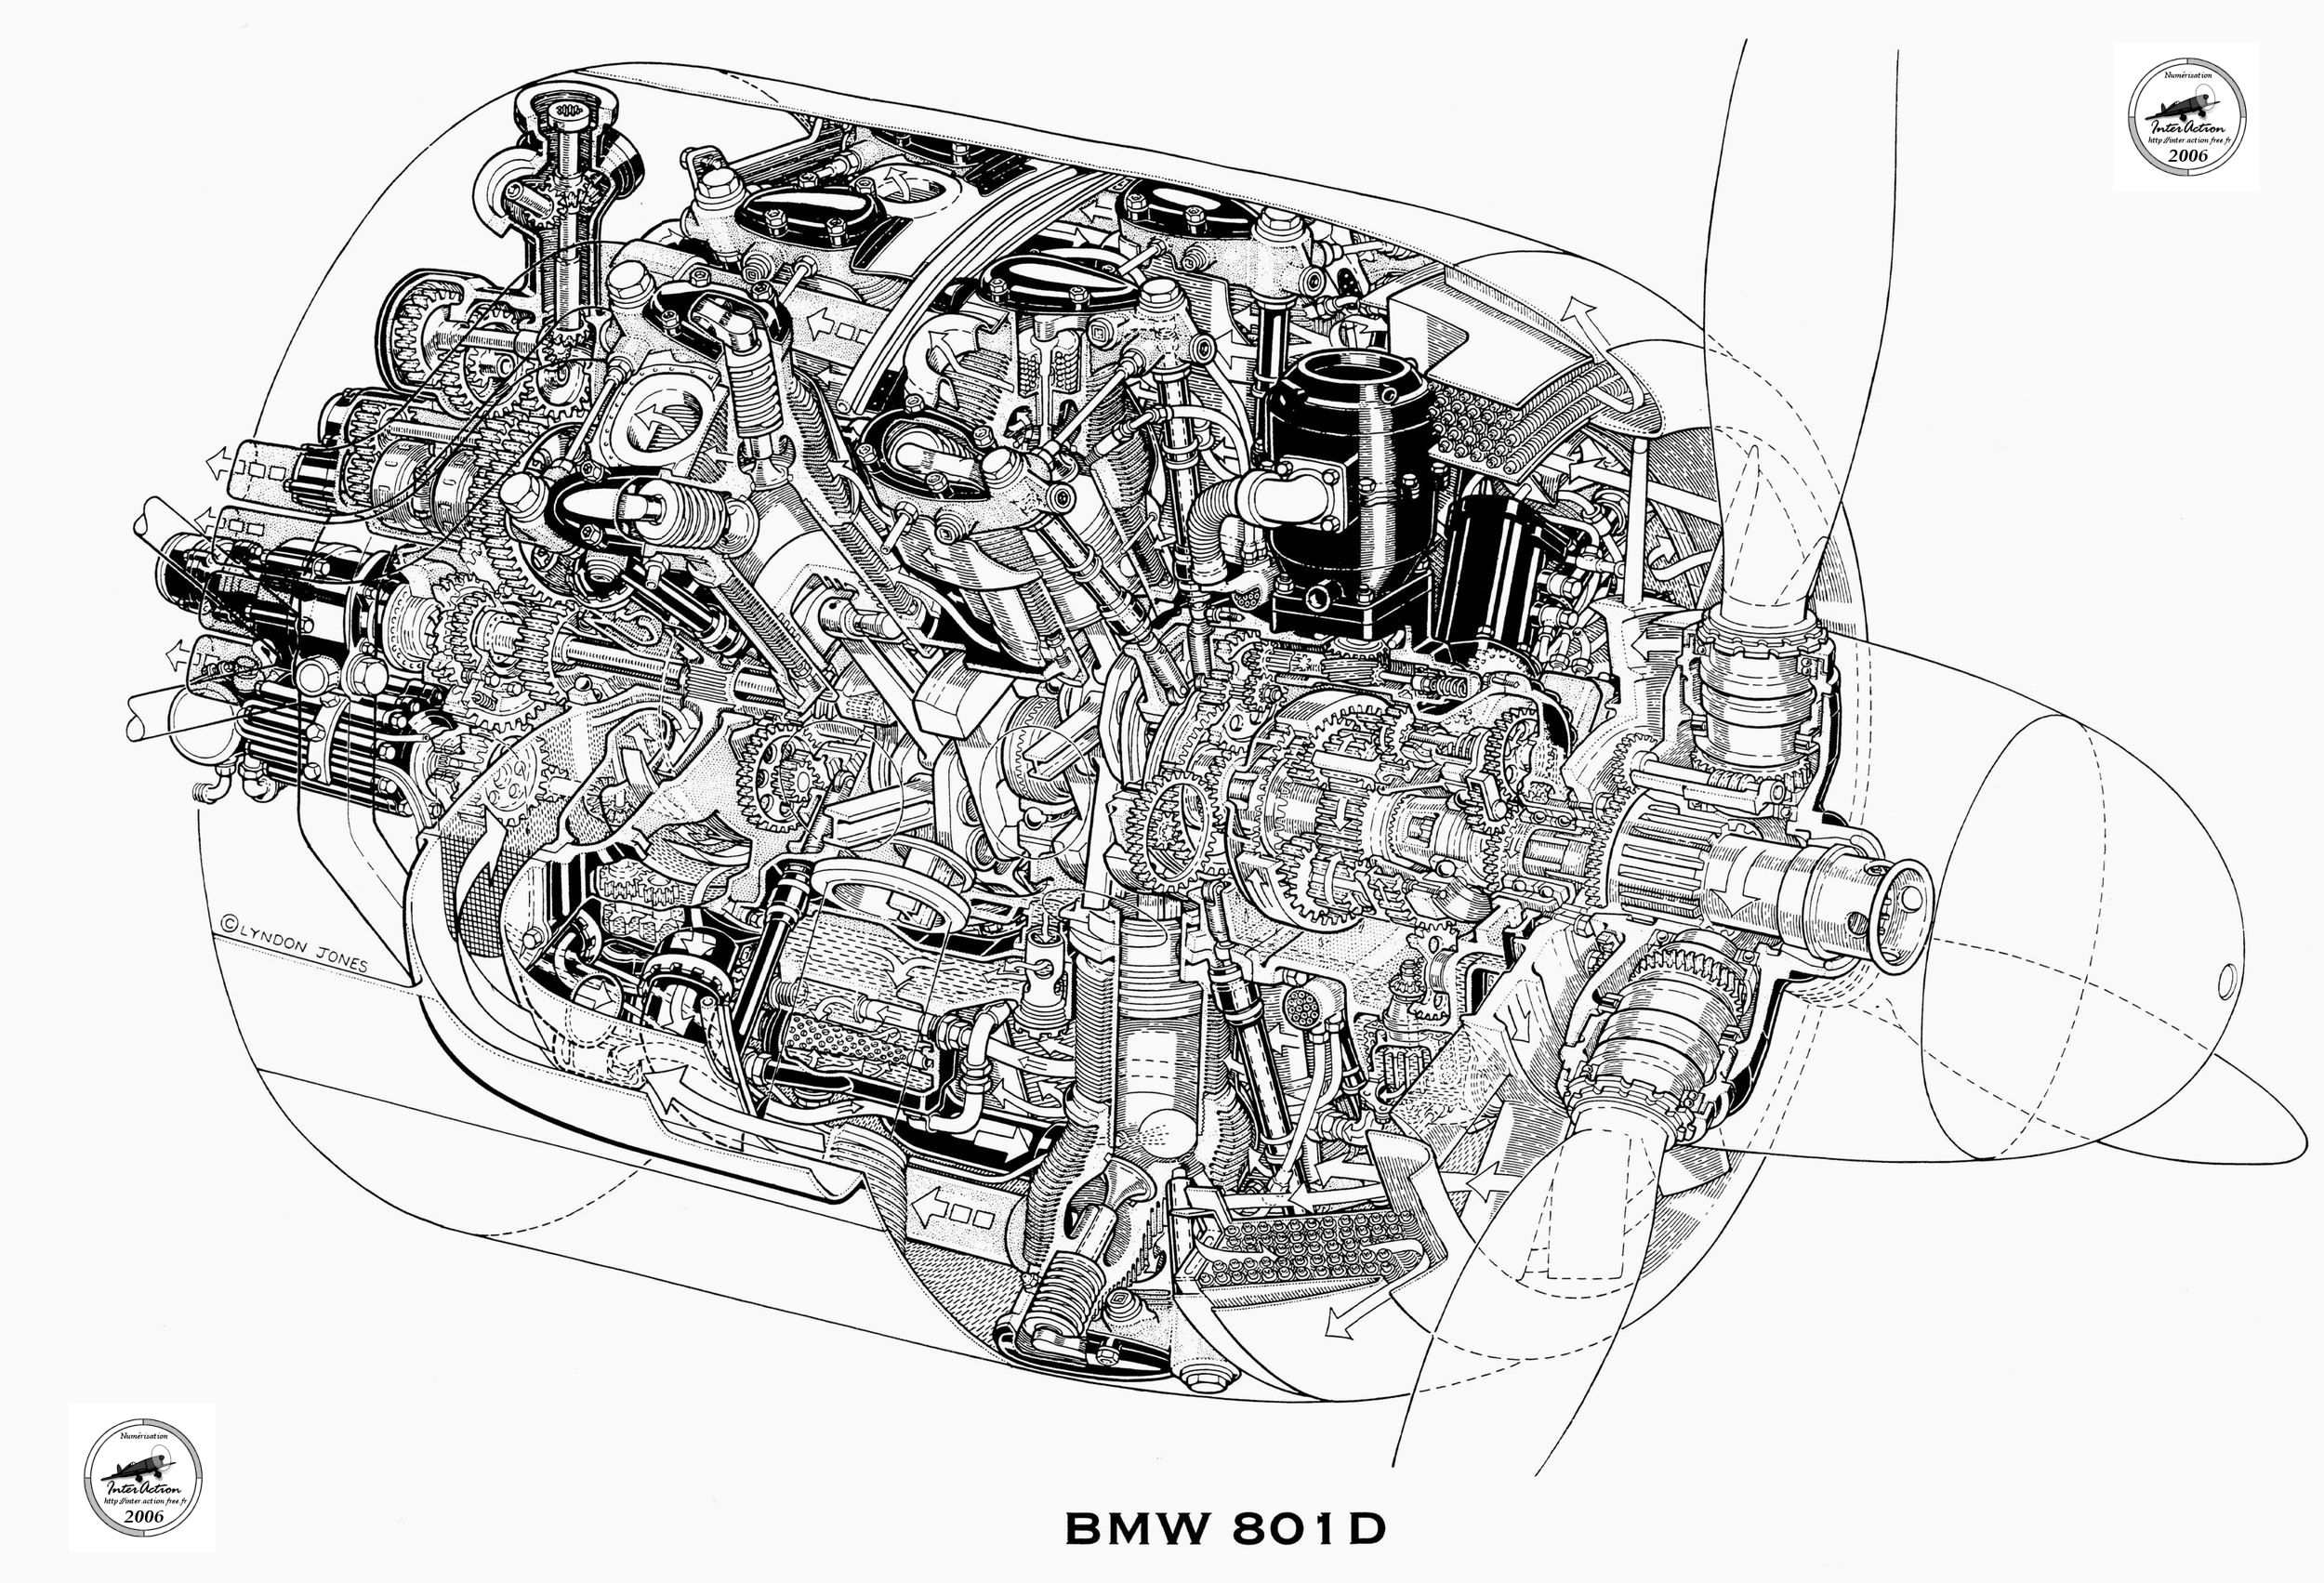 Engine technical drawing bmw aircraft engines piston engines bmw engine technical drawing bmw aircraft engines piston engines bmw iiia bmw iv bmw v bmw ccuart Choice Image